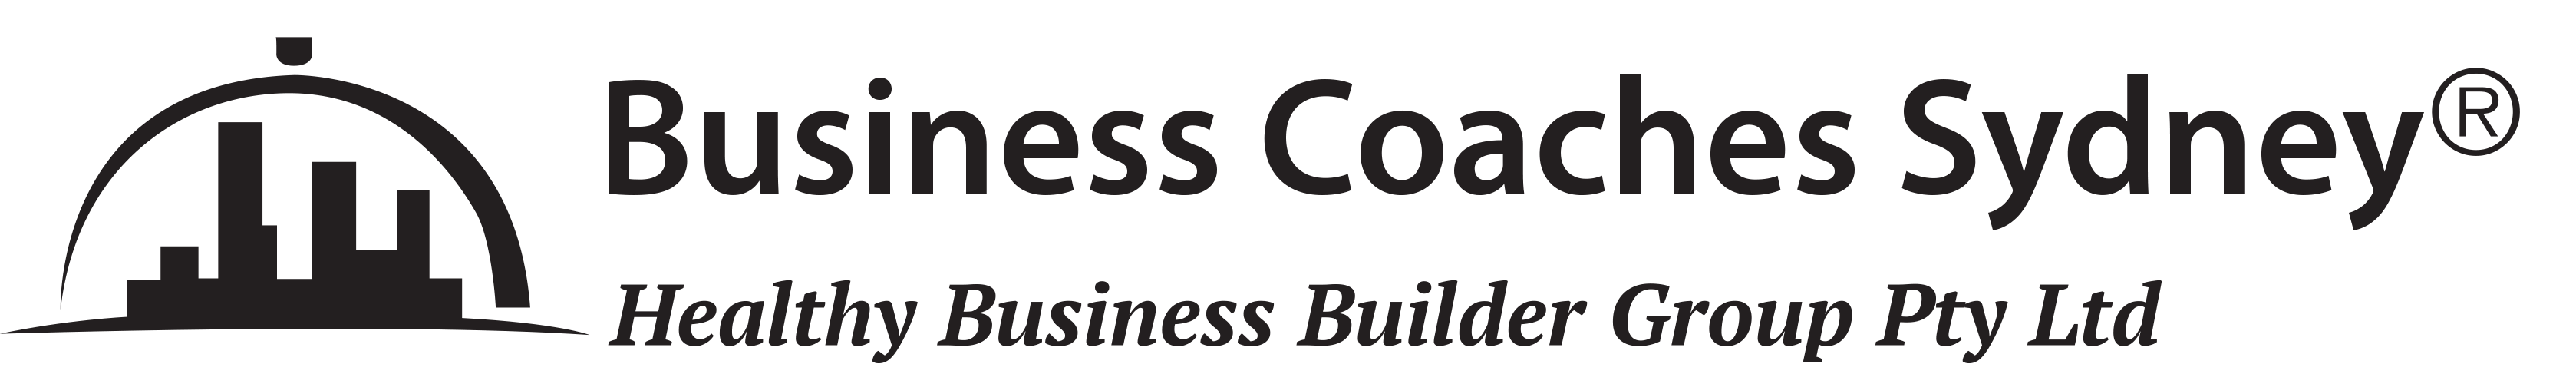 BUSINESSCOACHESSYDNEY.COM.AU